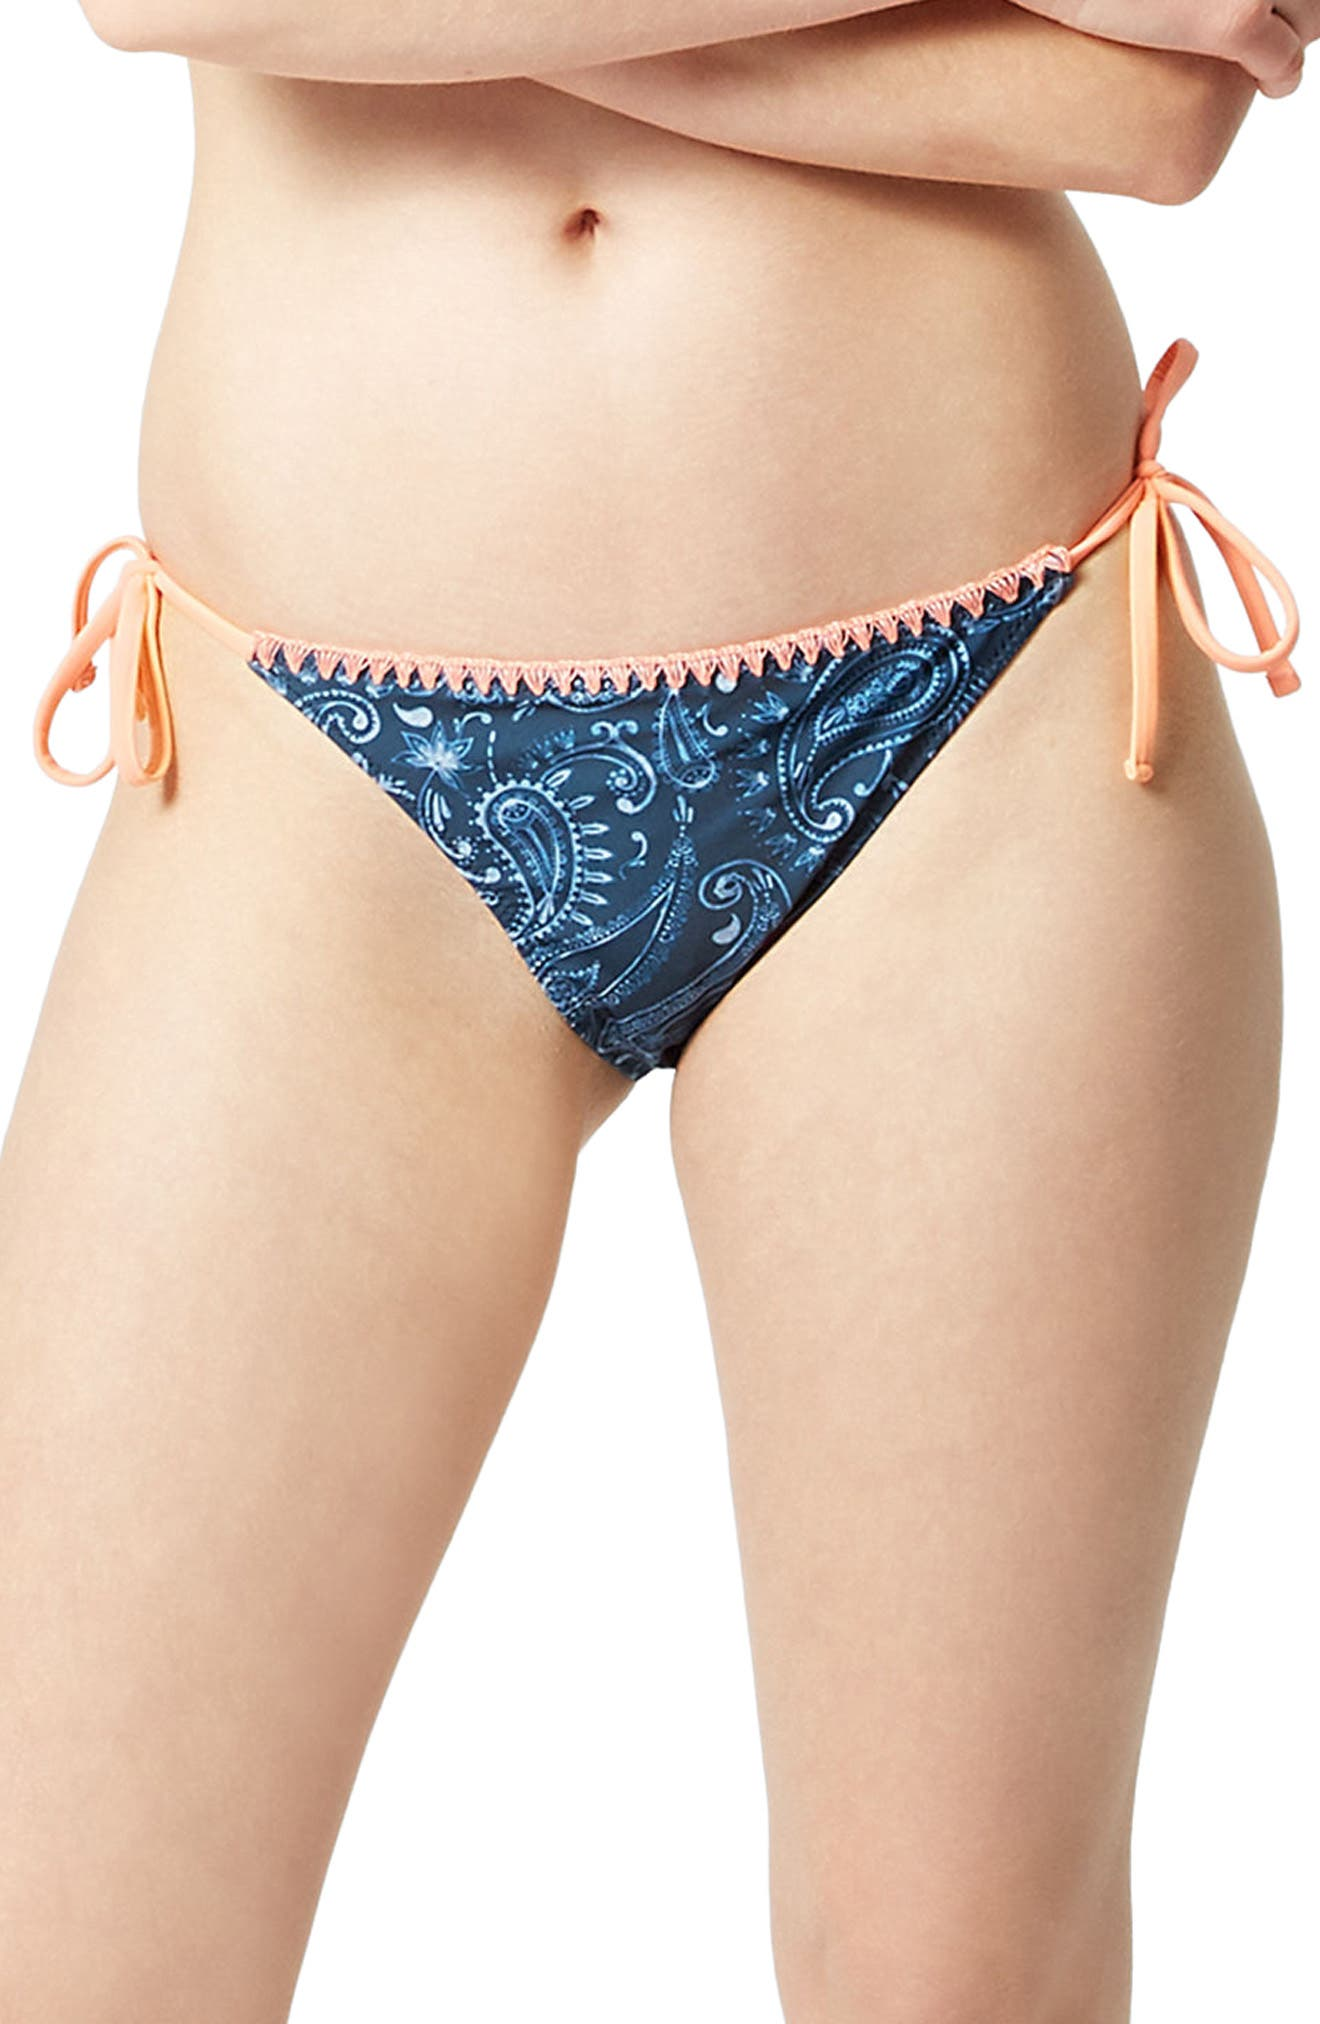 Purity Reversible Bikini Bottoms,                             Main thumbnail 1, color,                             Printed/ Oxblood